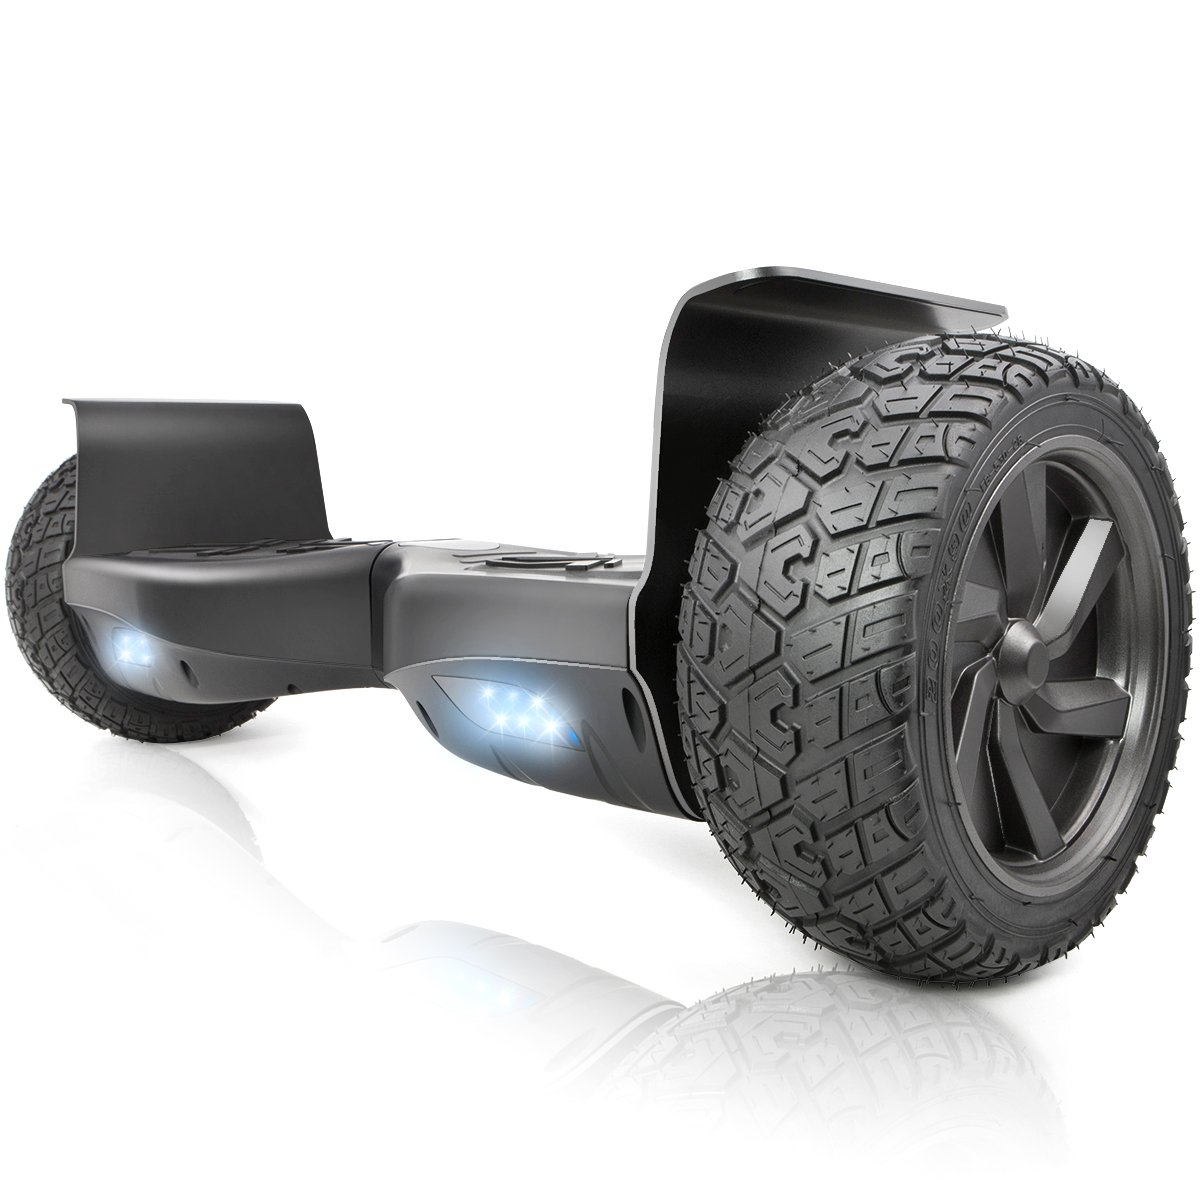 XtremepowerUS 8.5'' Off Road Hoverboard w/ Bluetooth Speaker and LED Light (Black) by XtremepowerUS